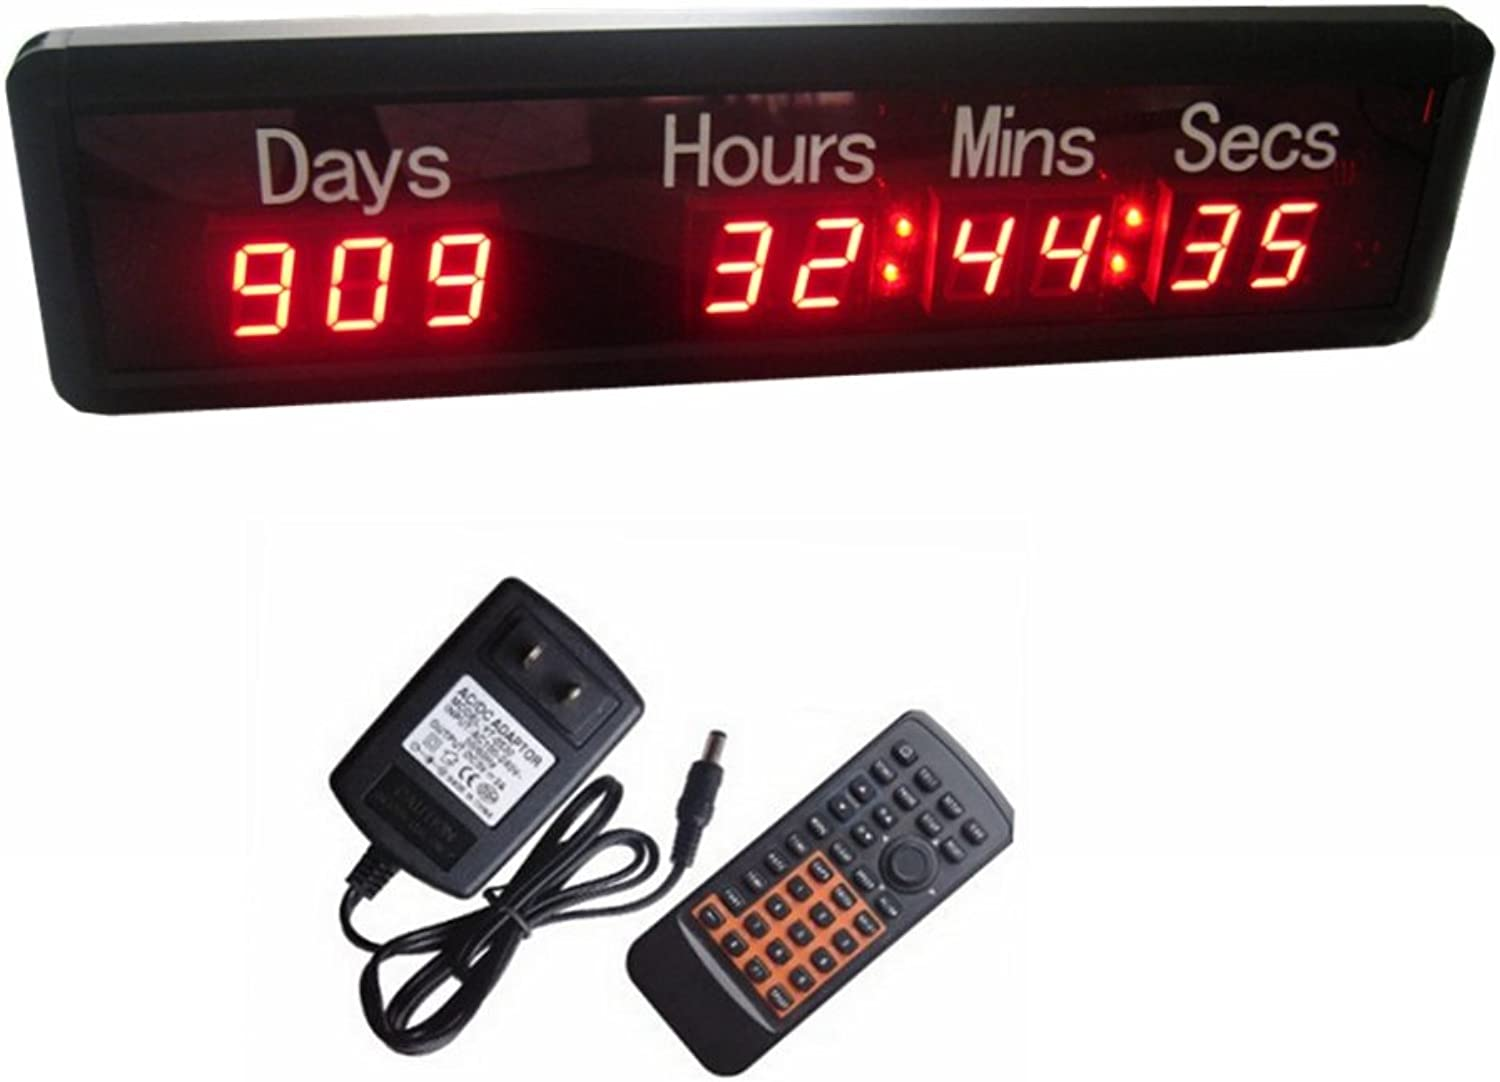 AZOOU 1-inch 9Digits LED Event Timer Countdown up Clock with Days Hours Mins Secs Max Up to 1000 Days Red color